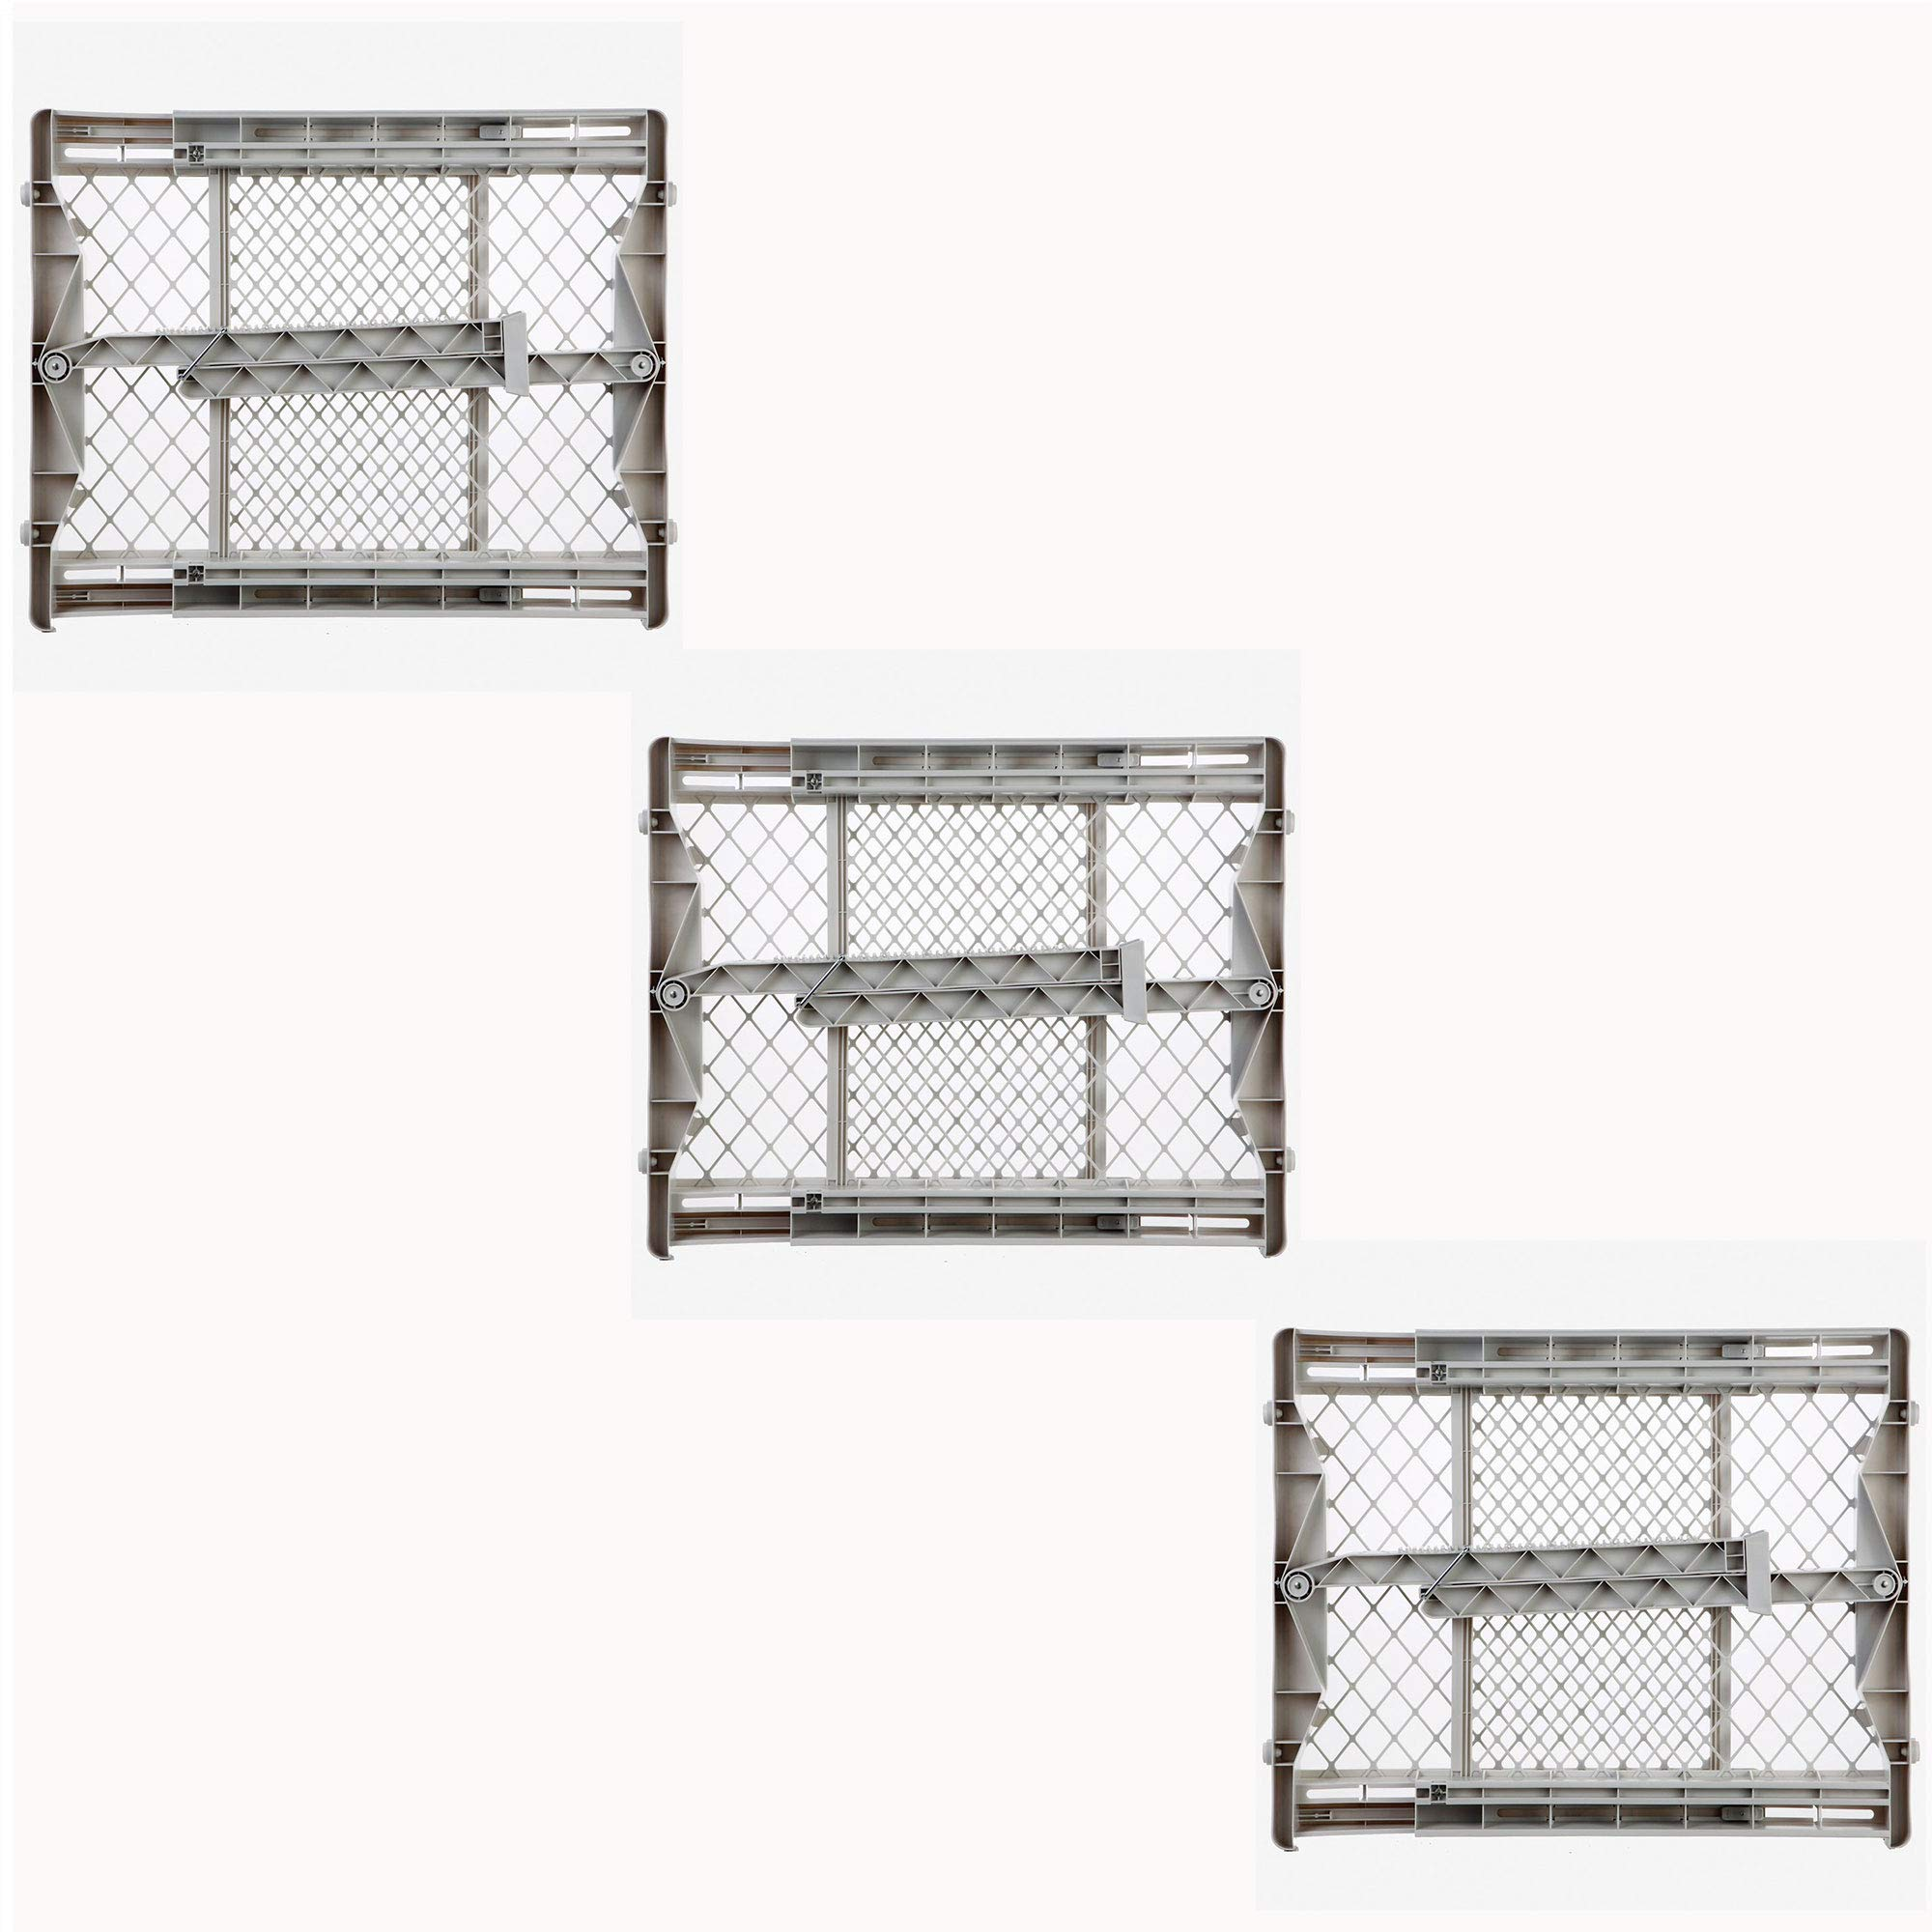 North States Top Notch Plastic Pressure Mounted Baby Pet Safety Gate (3 Pack)